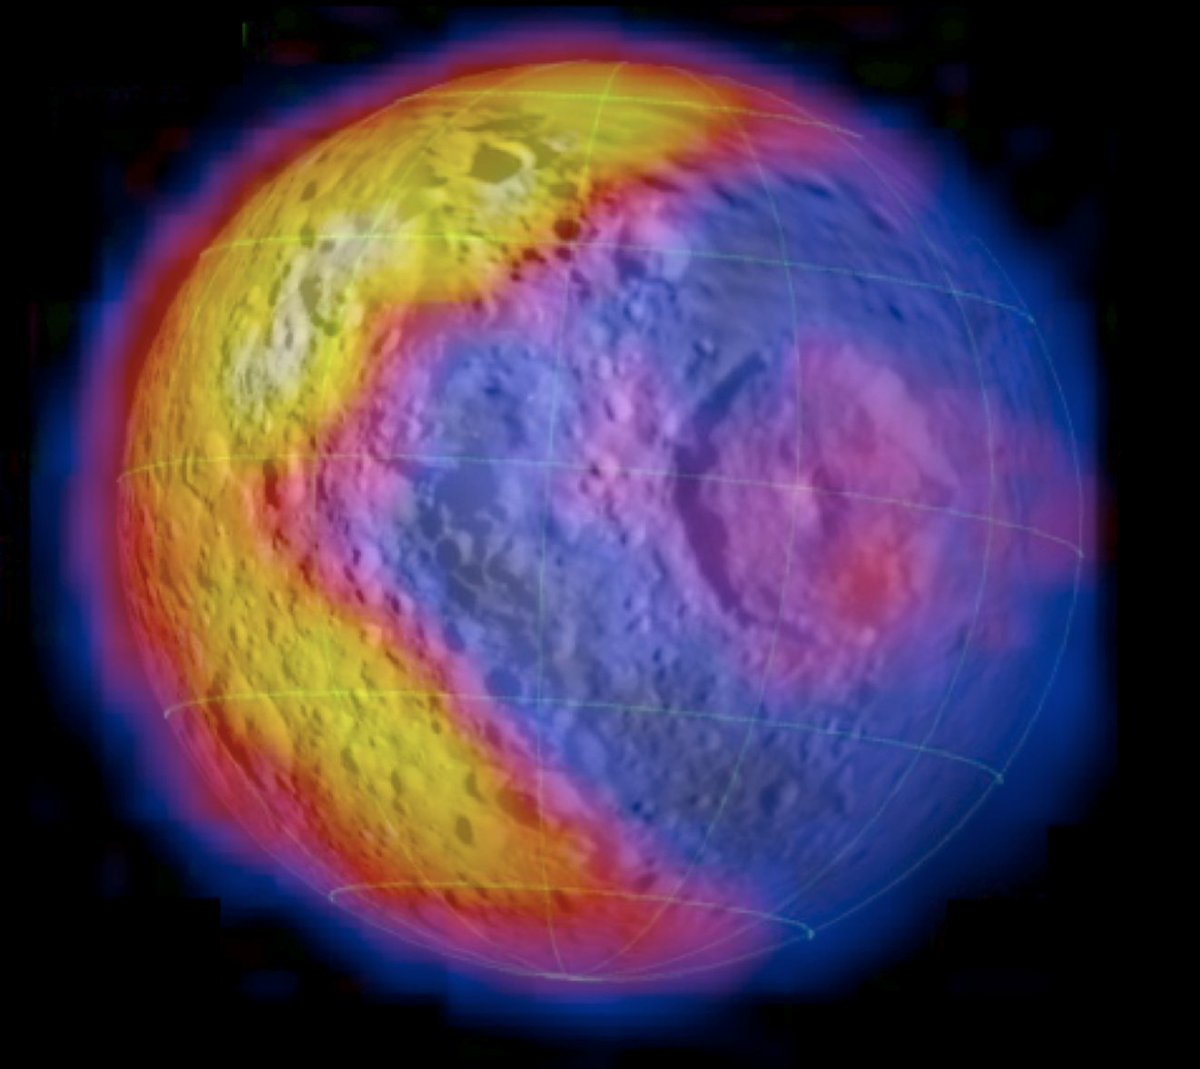 thermal image of Mimas